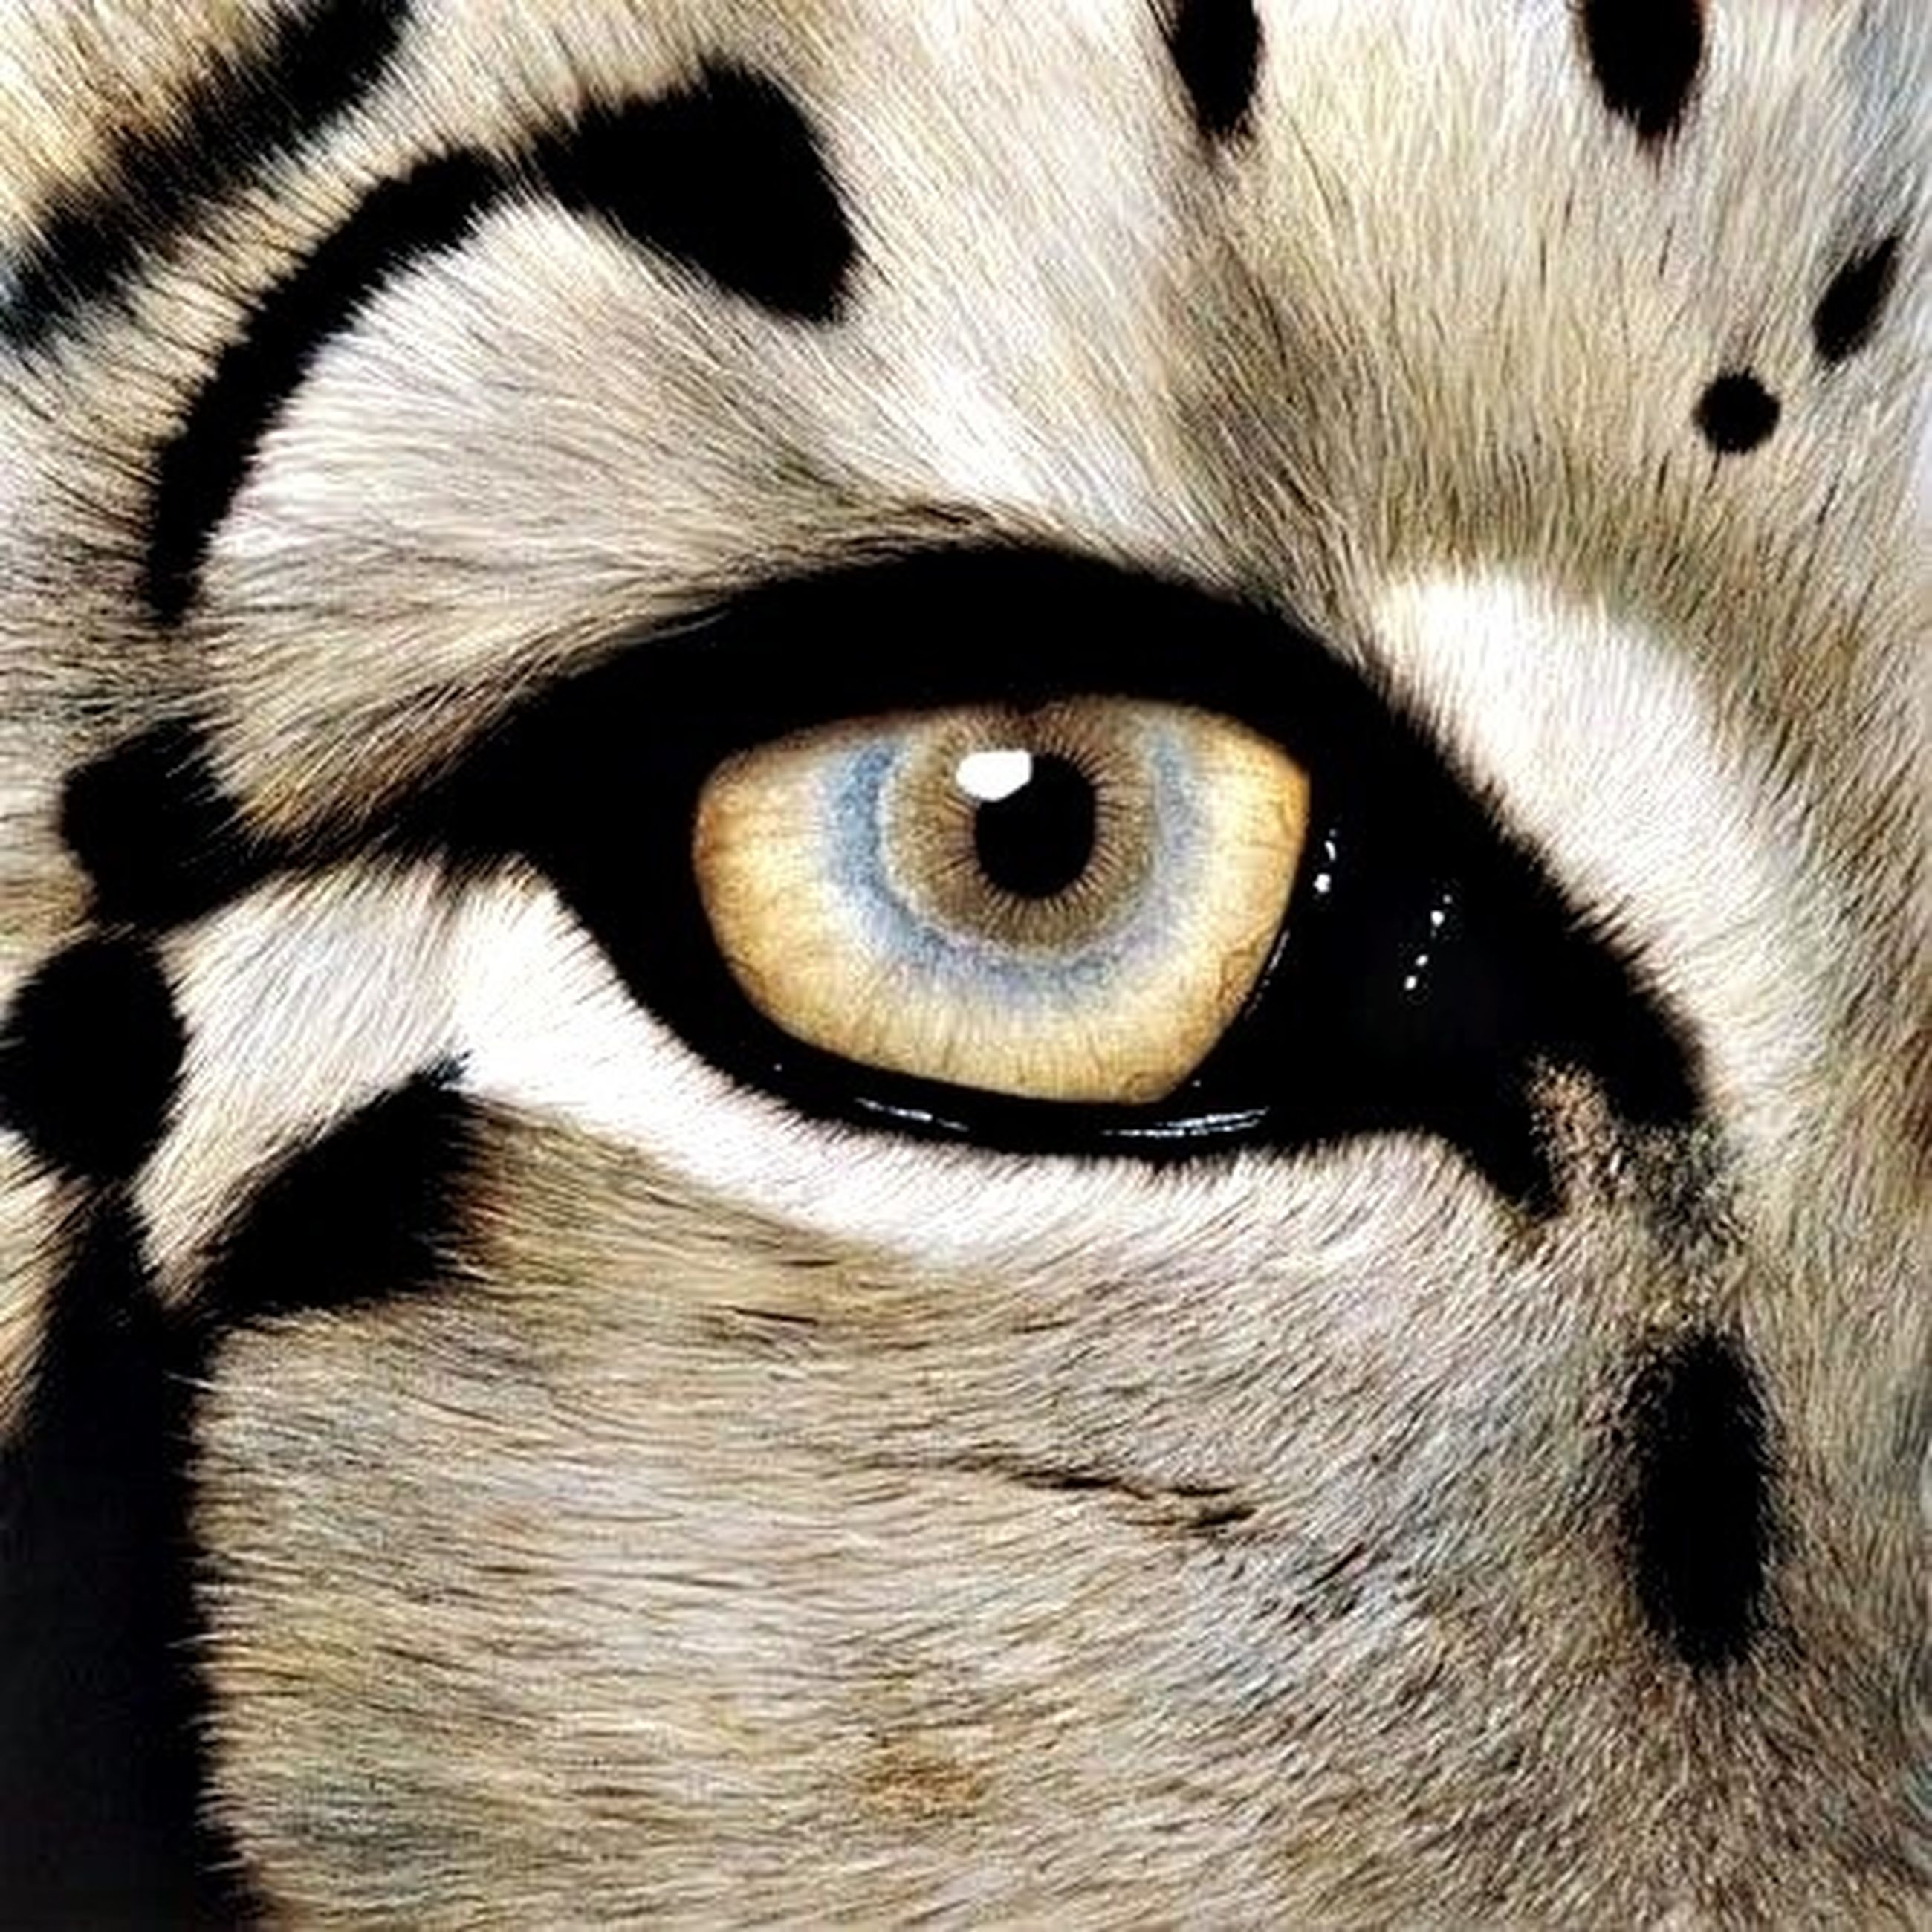 full frame, backgrounds, one animal, animal themes, close-up, animal body part, animal head, part of, extreme close-up, extreme close up, detail, animal eye, mammal, pattern, textured, domestic animals, portrait, no people, natural pattern, pets